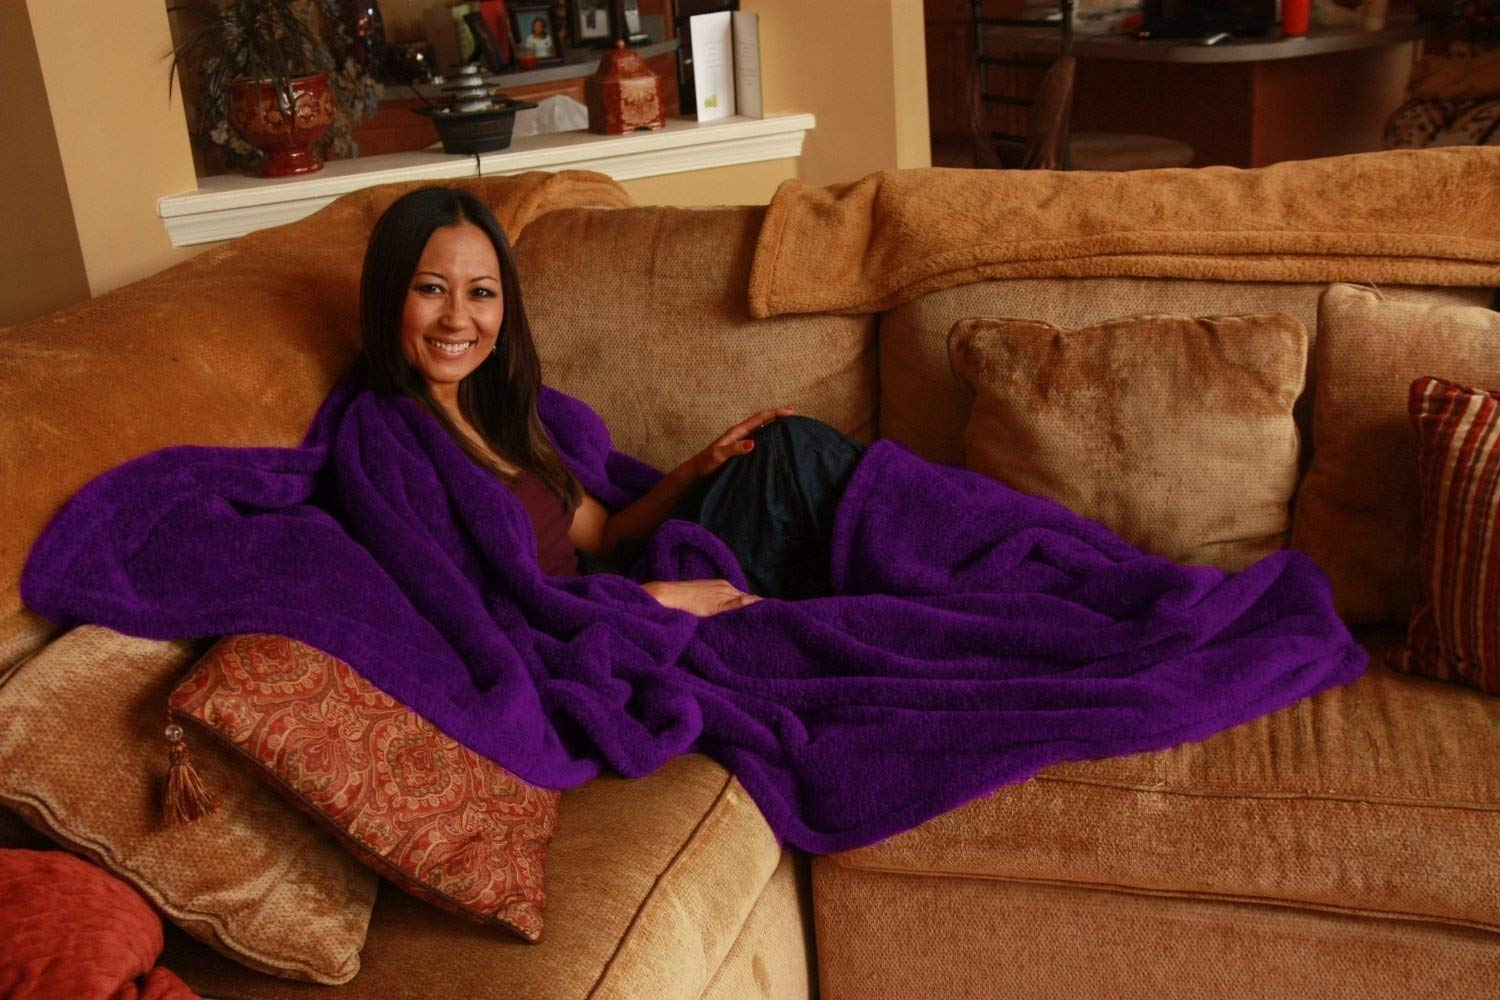 Ultra Cuddle - Shawl Blanket with Feet Pockets - Super Plush Purple The Ultra Cuddle Company